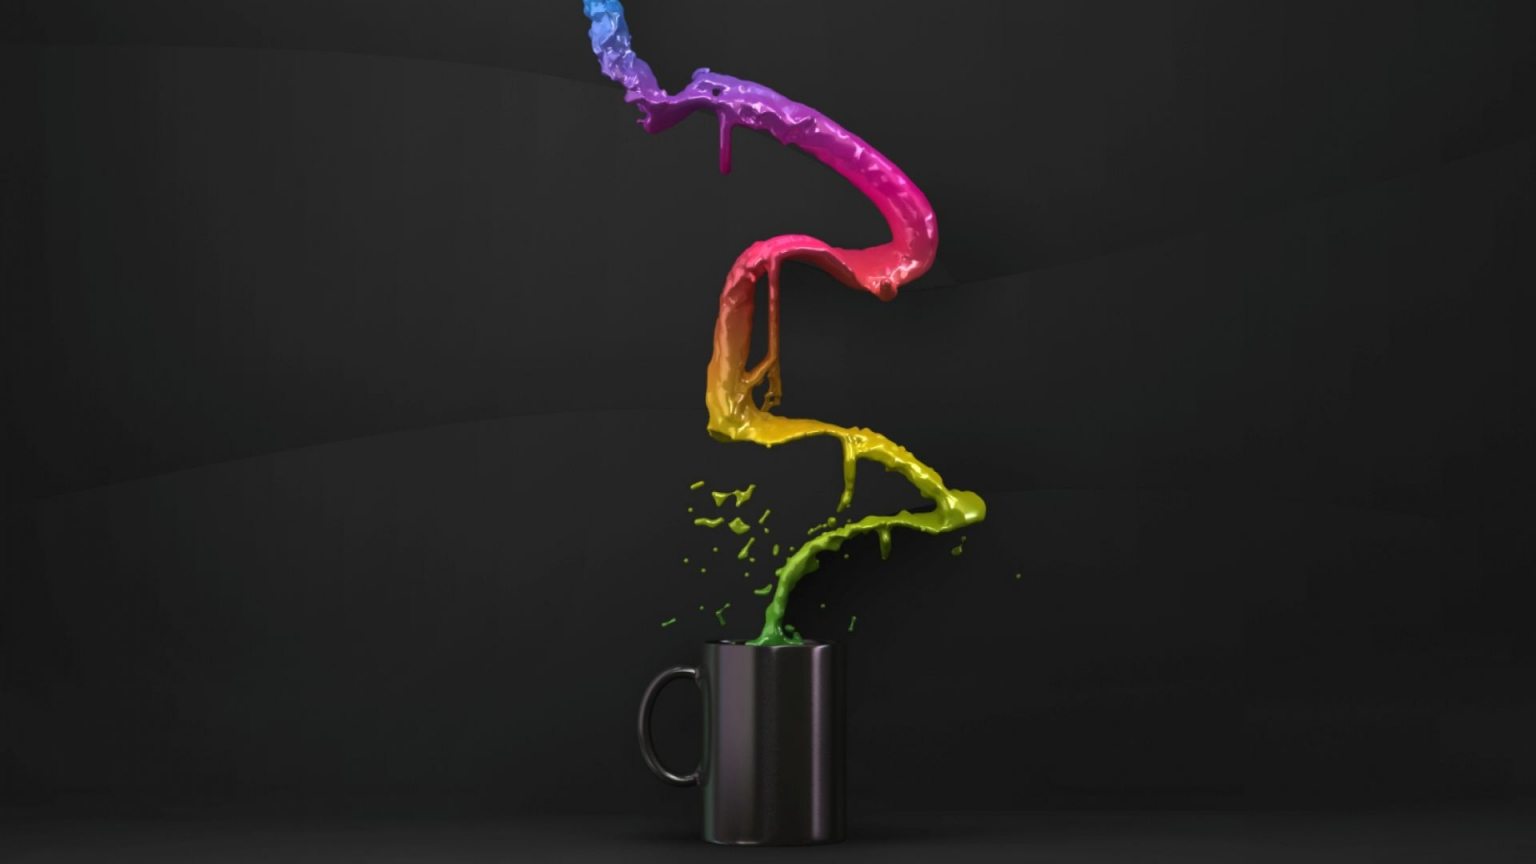 Free Download 3d Coffee Cup Color Splash 4k Full Hd Backgrounds Hd 1920x1200 For Your Desktop Mobile Tablet Explore 76 Color Splash Wallpaper Color Splash Wallpaper Hd Abstract Color Wallpaper